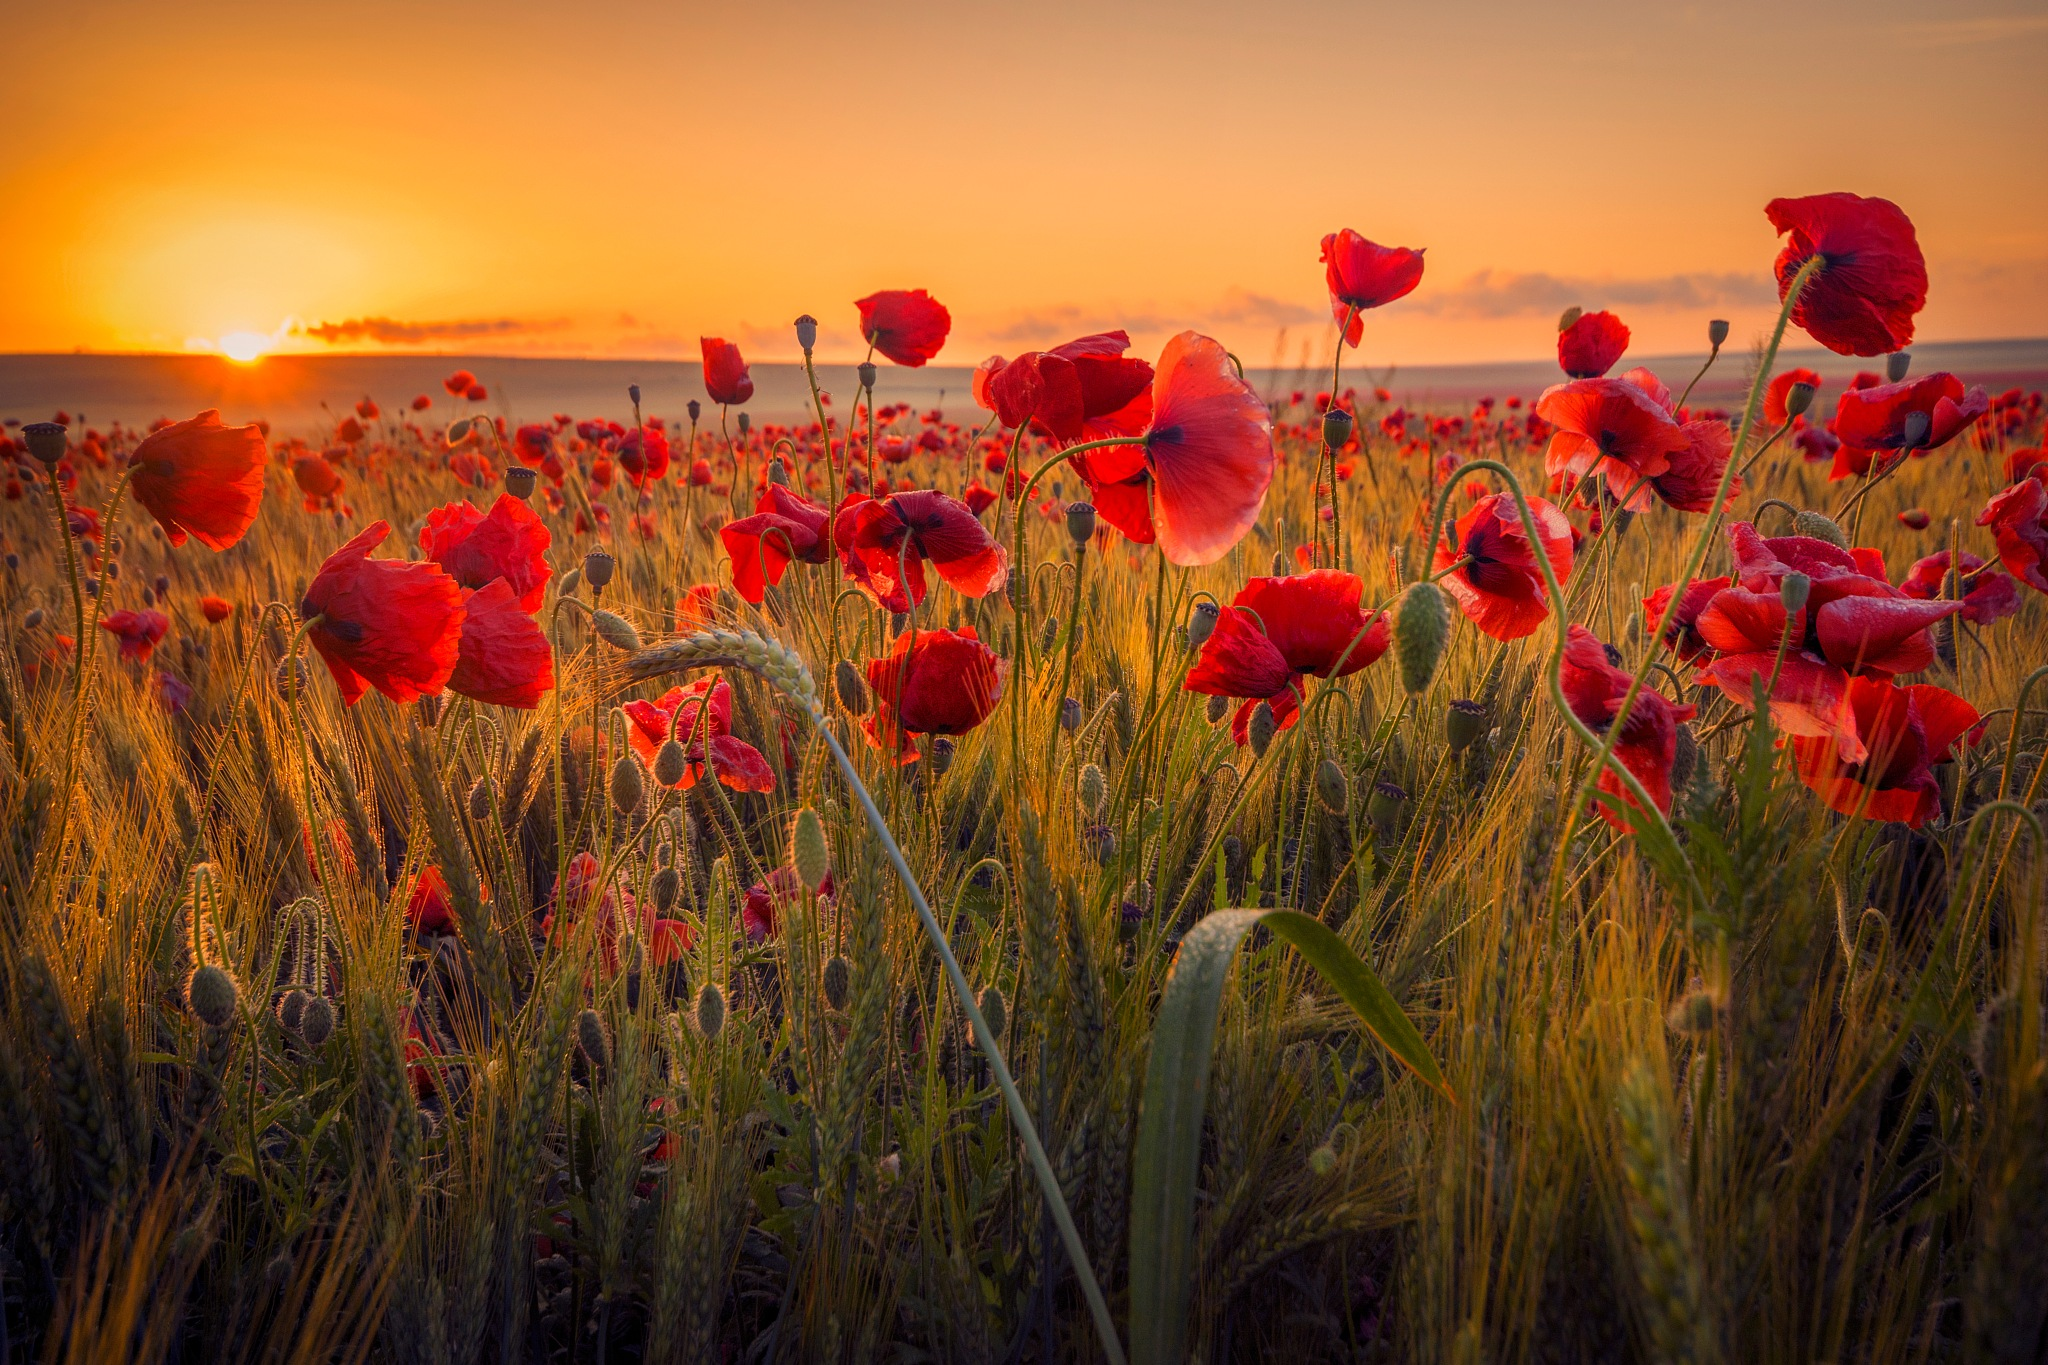 Poppy Therapy - The red sunrise by Ionut Petrea